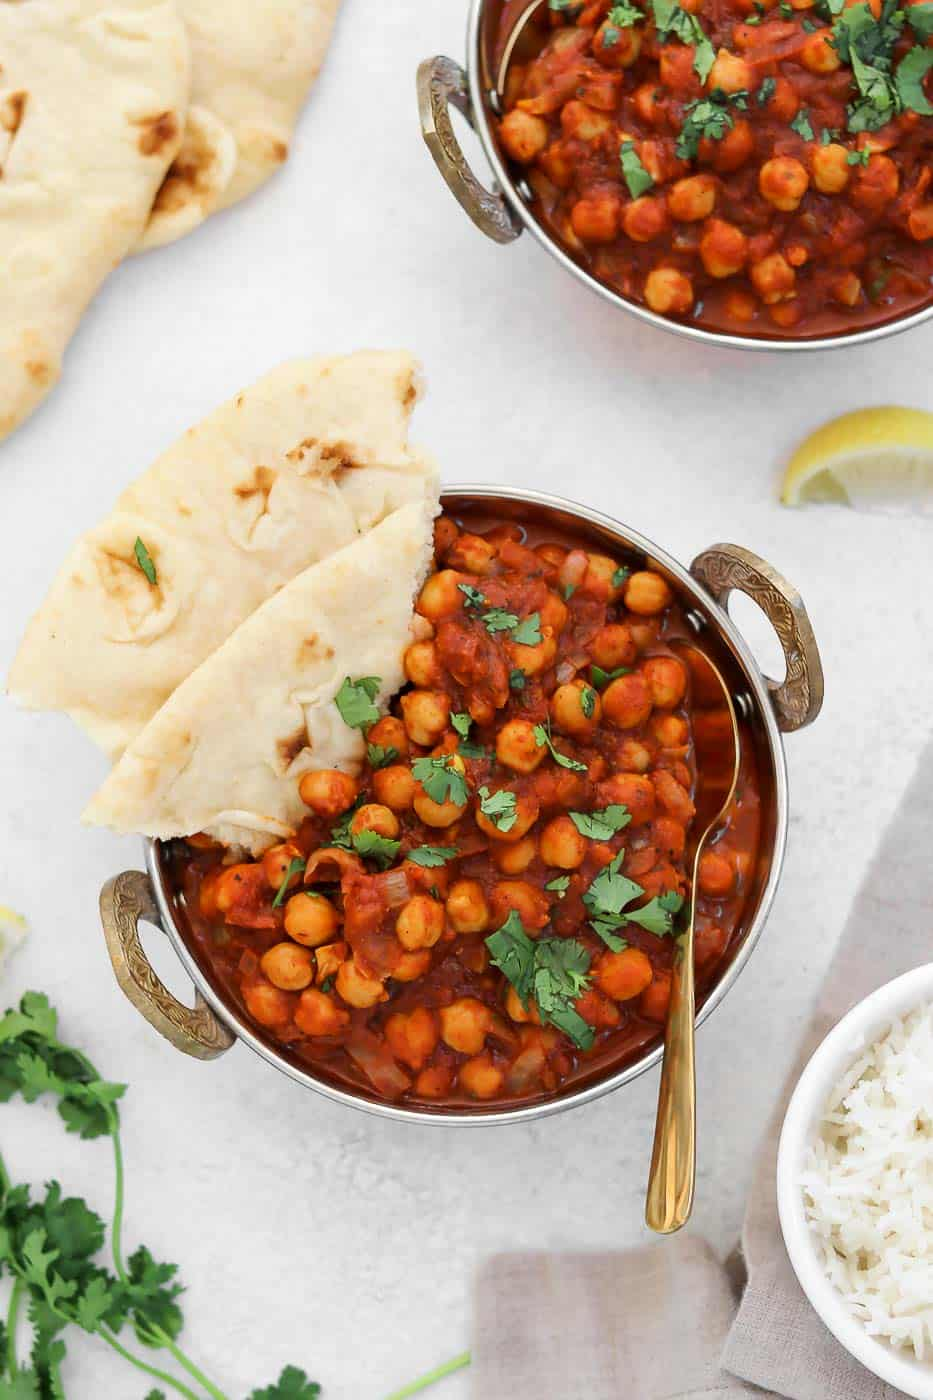 Chana masala in a gold dish with naan on the side.